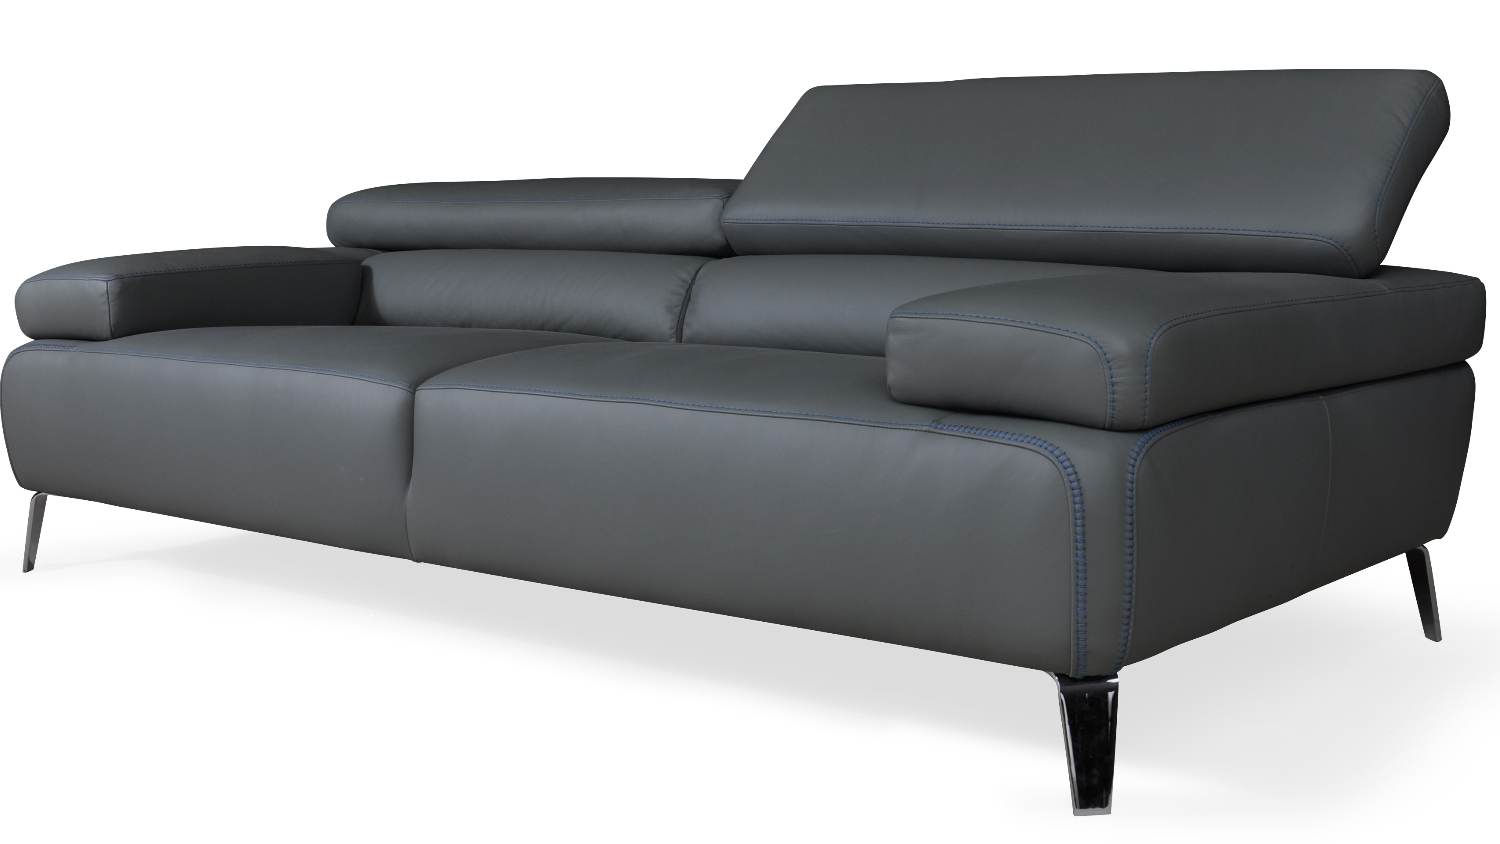 harveys fairmont sofa review olivia bright house harvey norman futon